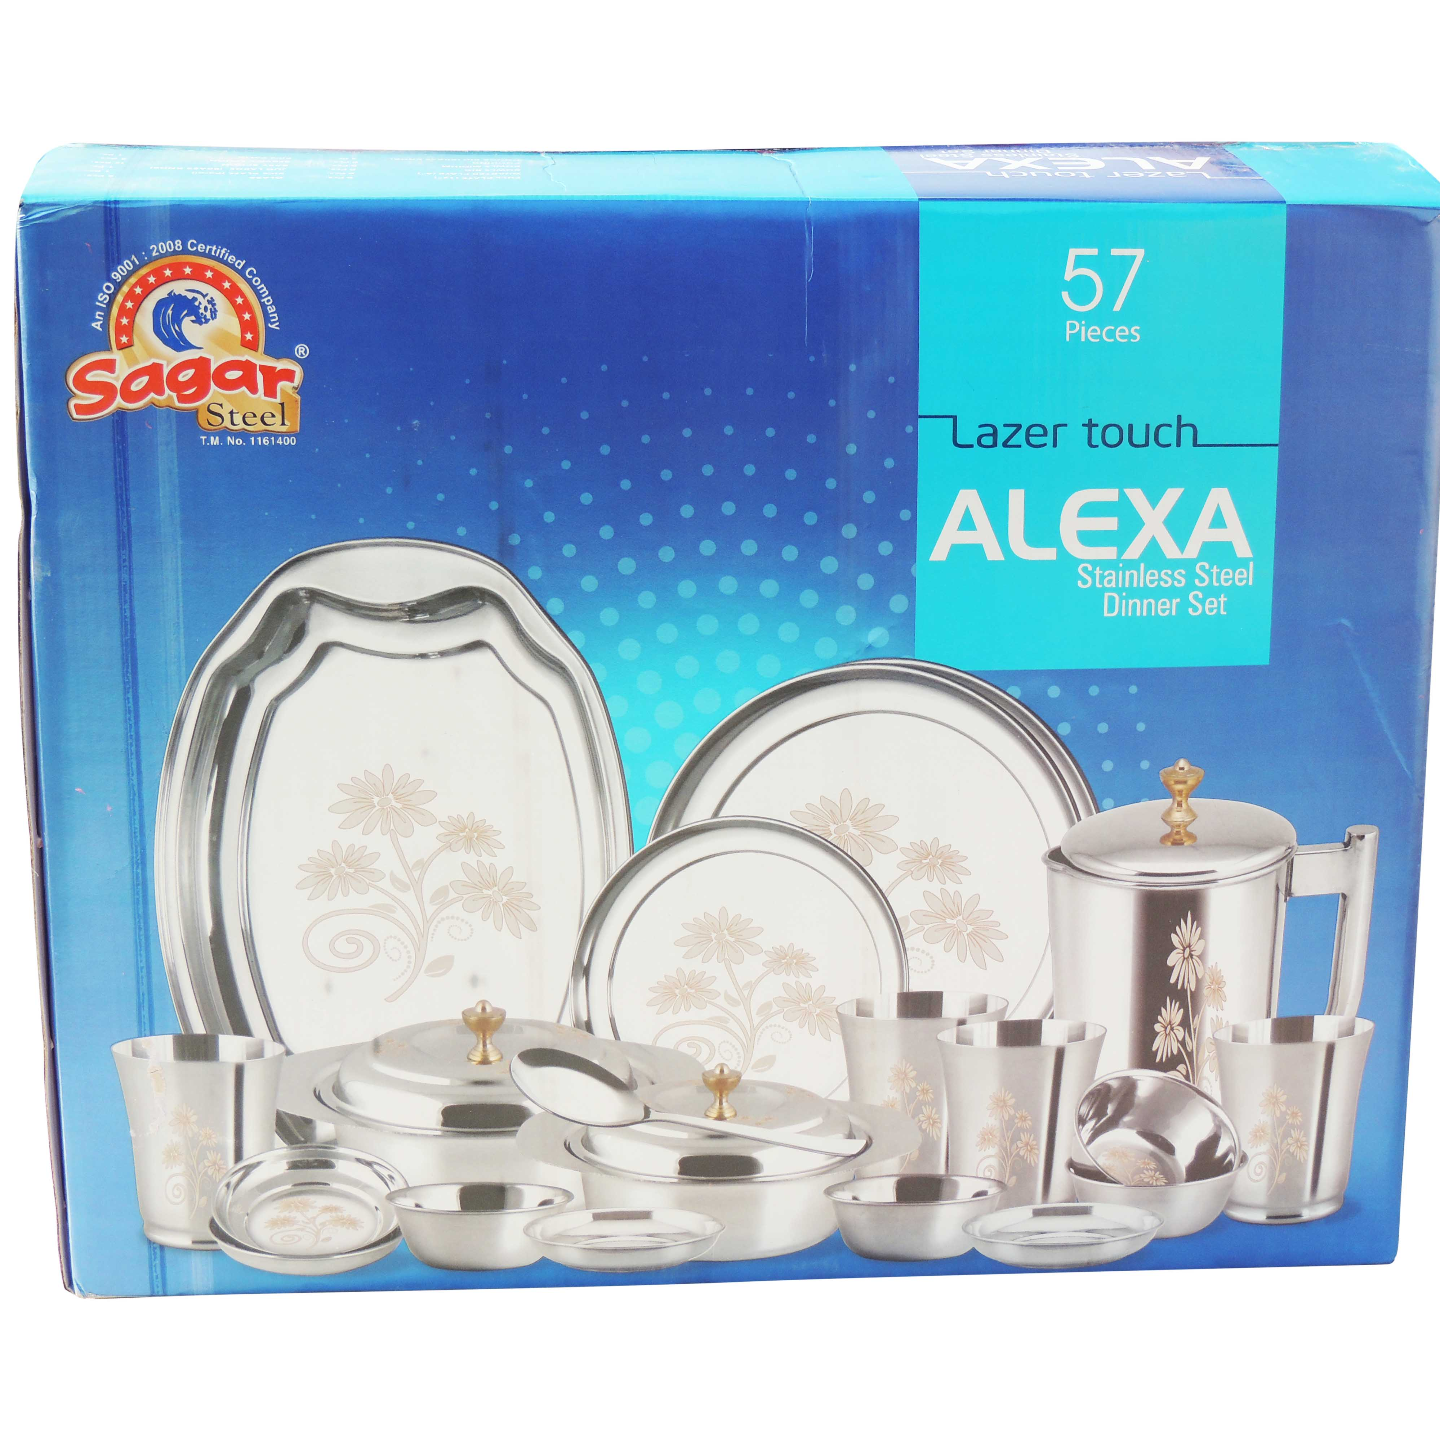 Dinner Set Alexa Lazer Touch 57 pcs S063 E